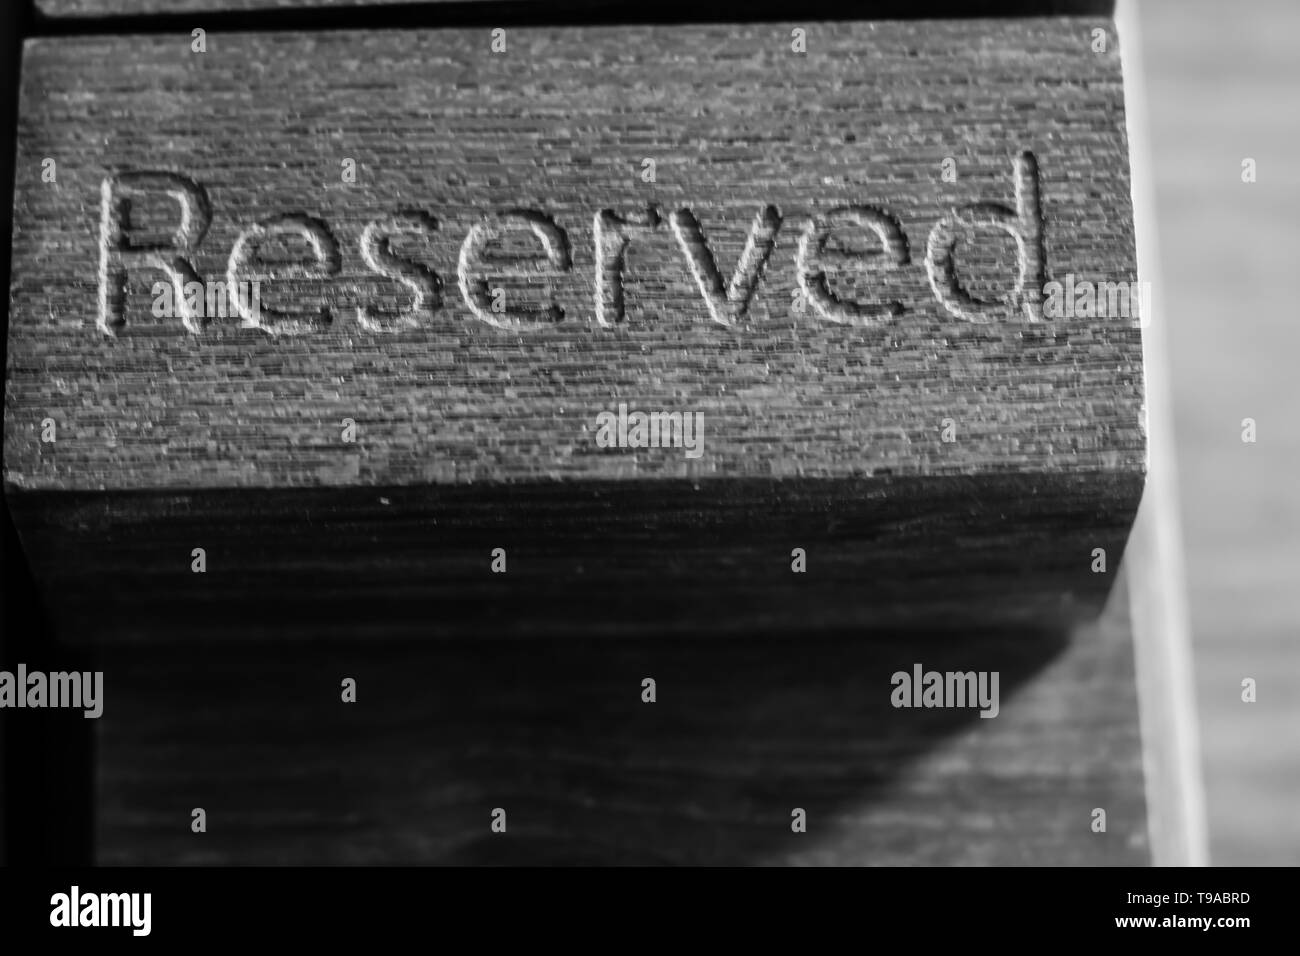 Reserved Wooden table in restaurant black and white photo - Stock Image